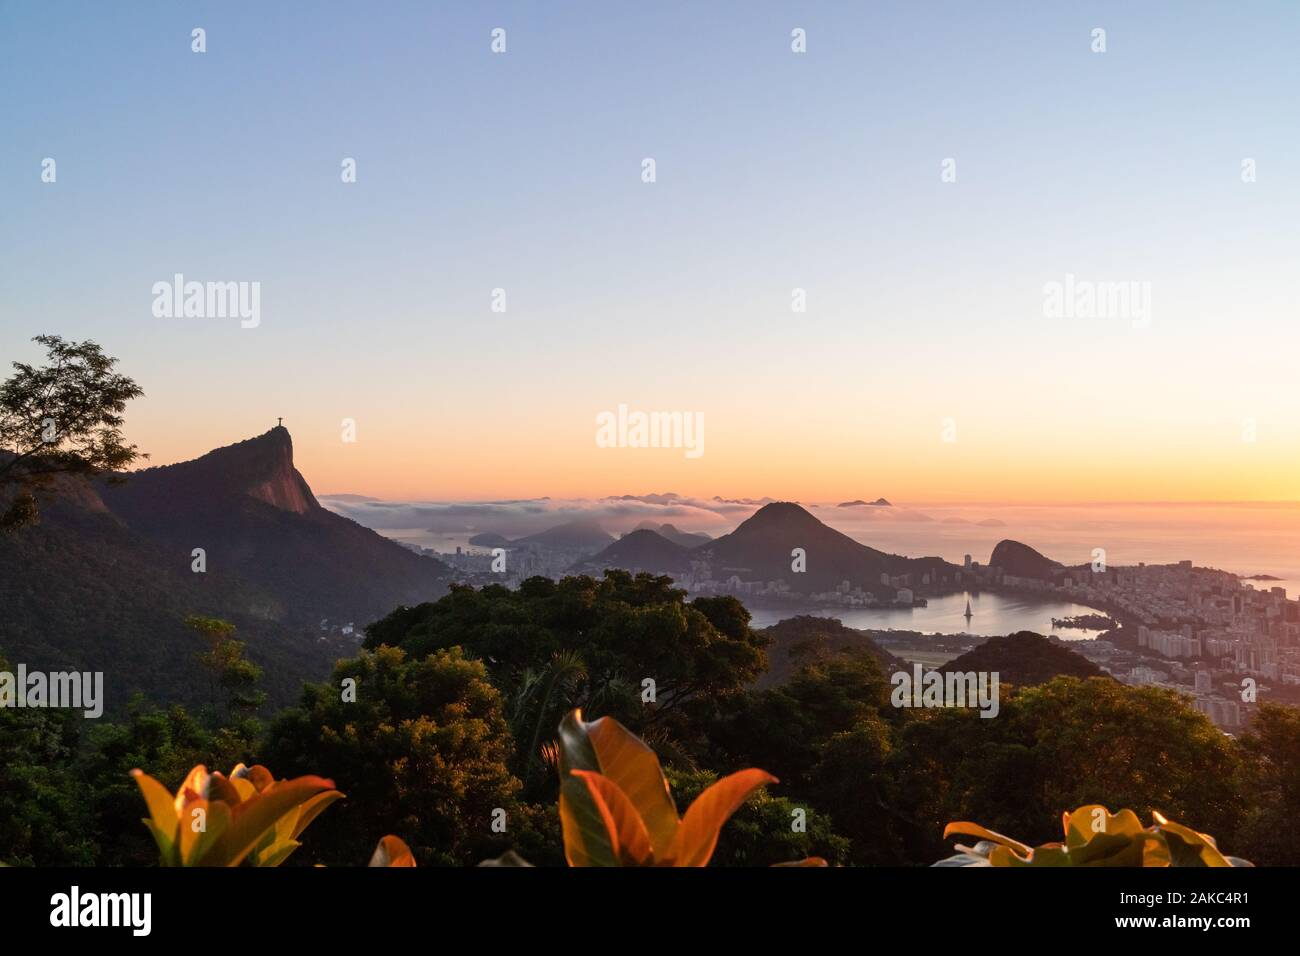 Sunrise over the city of Rio de Janeiro,Sugarloaf and Christ the Redeemer statue from Vista Chinesa. Stock Photo